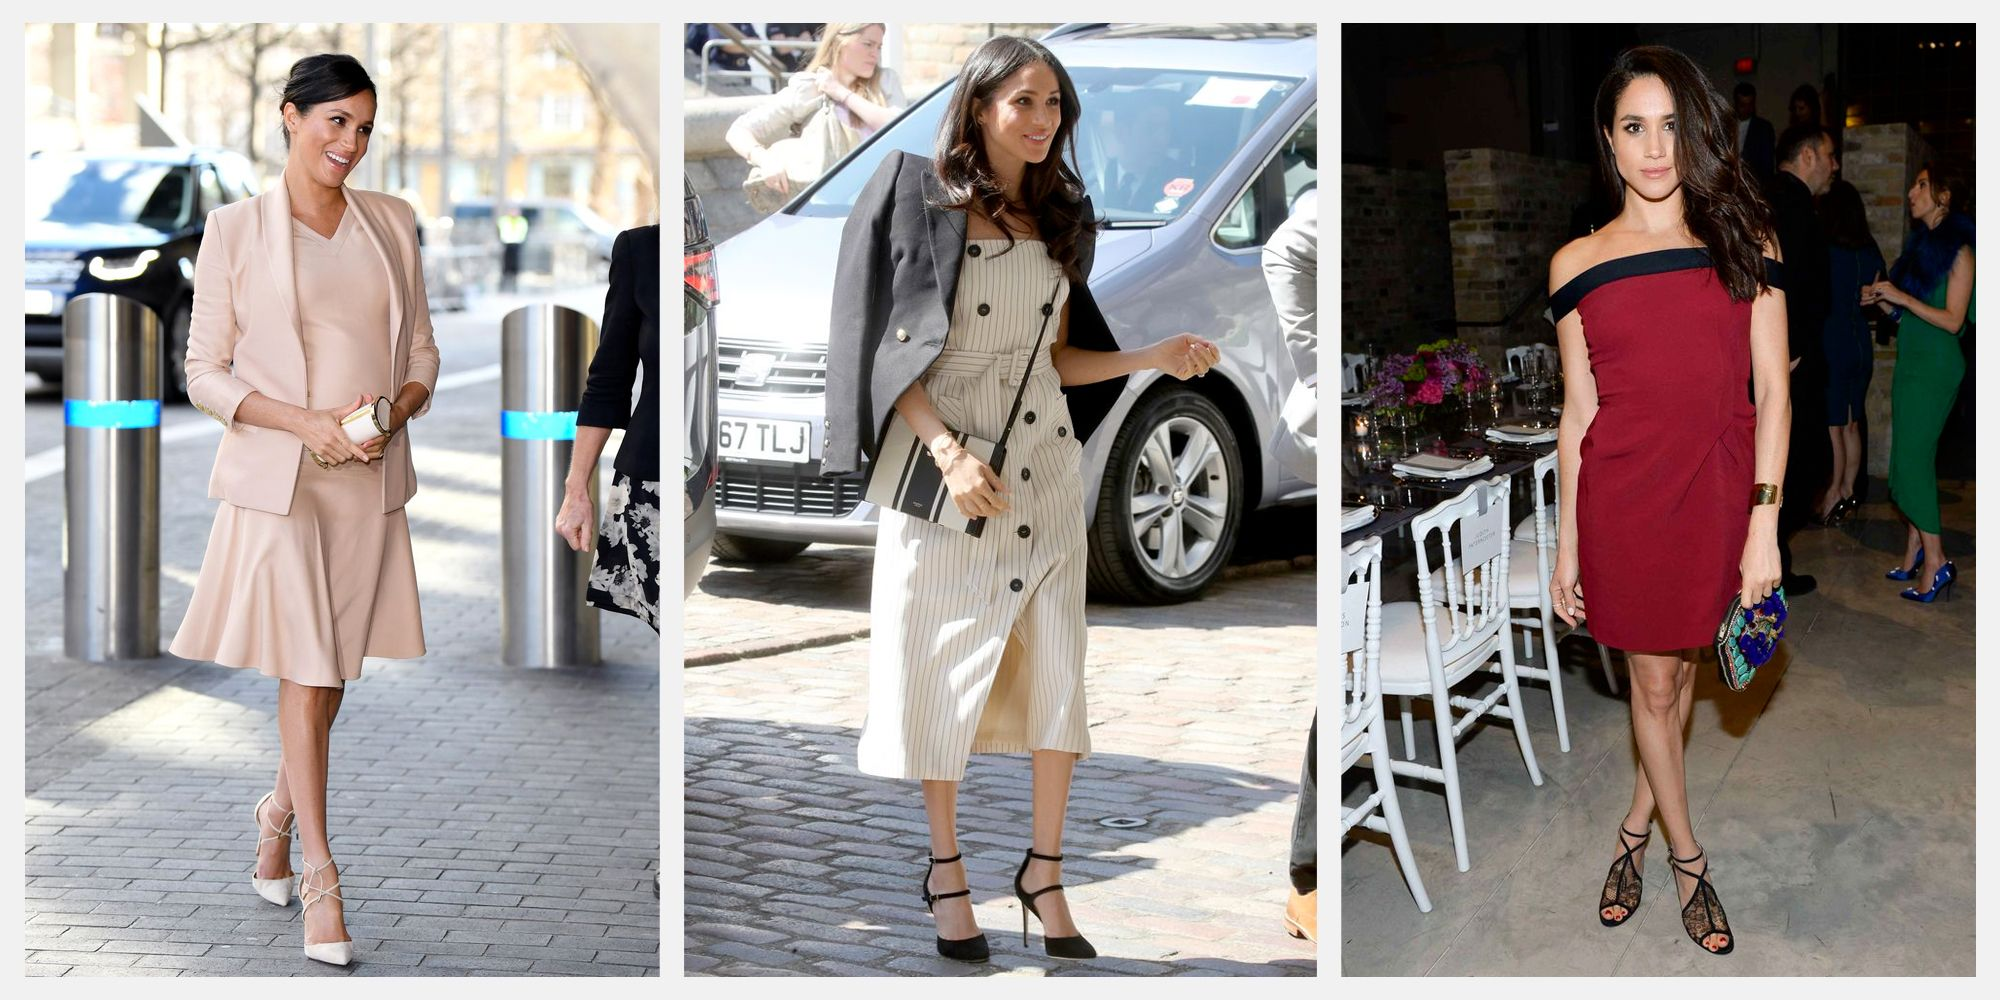 5f610de25f722 Meghan Markle Style - Photos of Meghan Markle's Best Fashion Moments